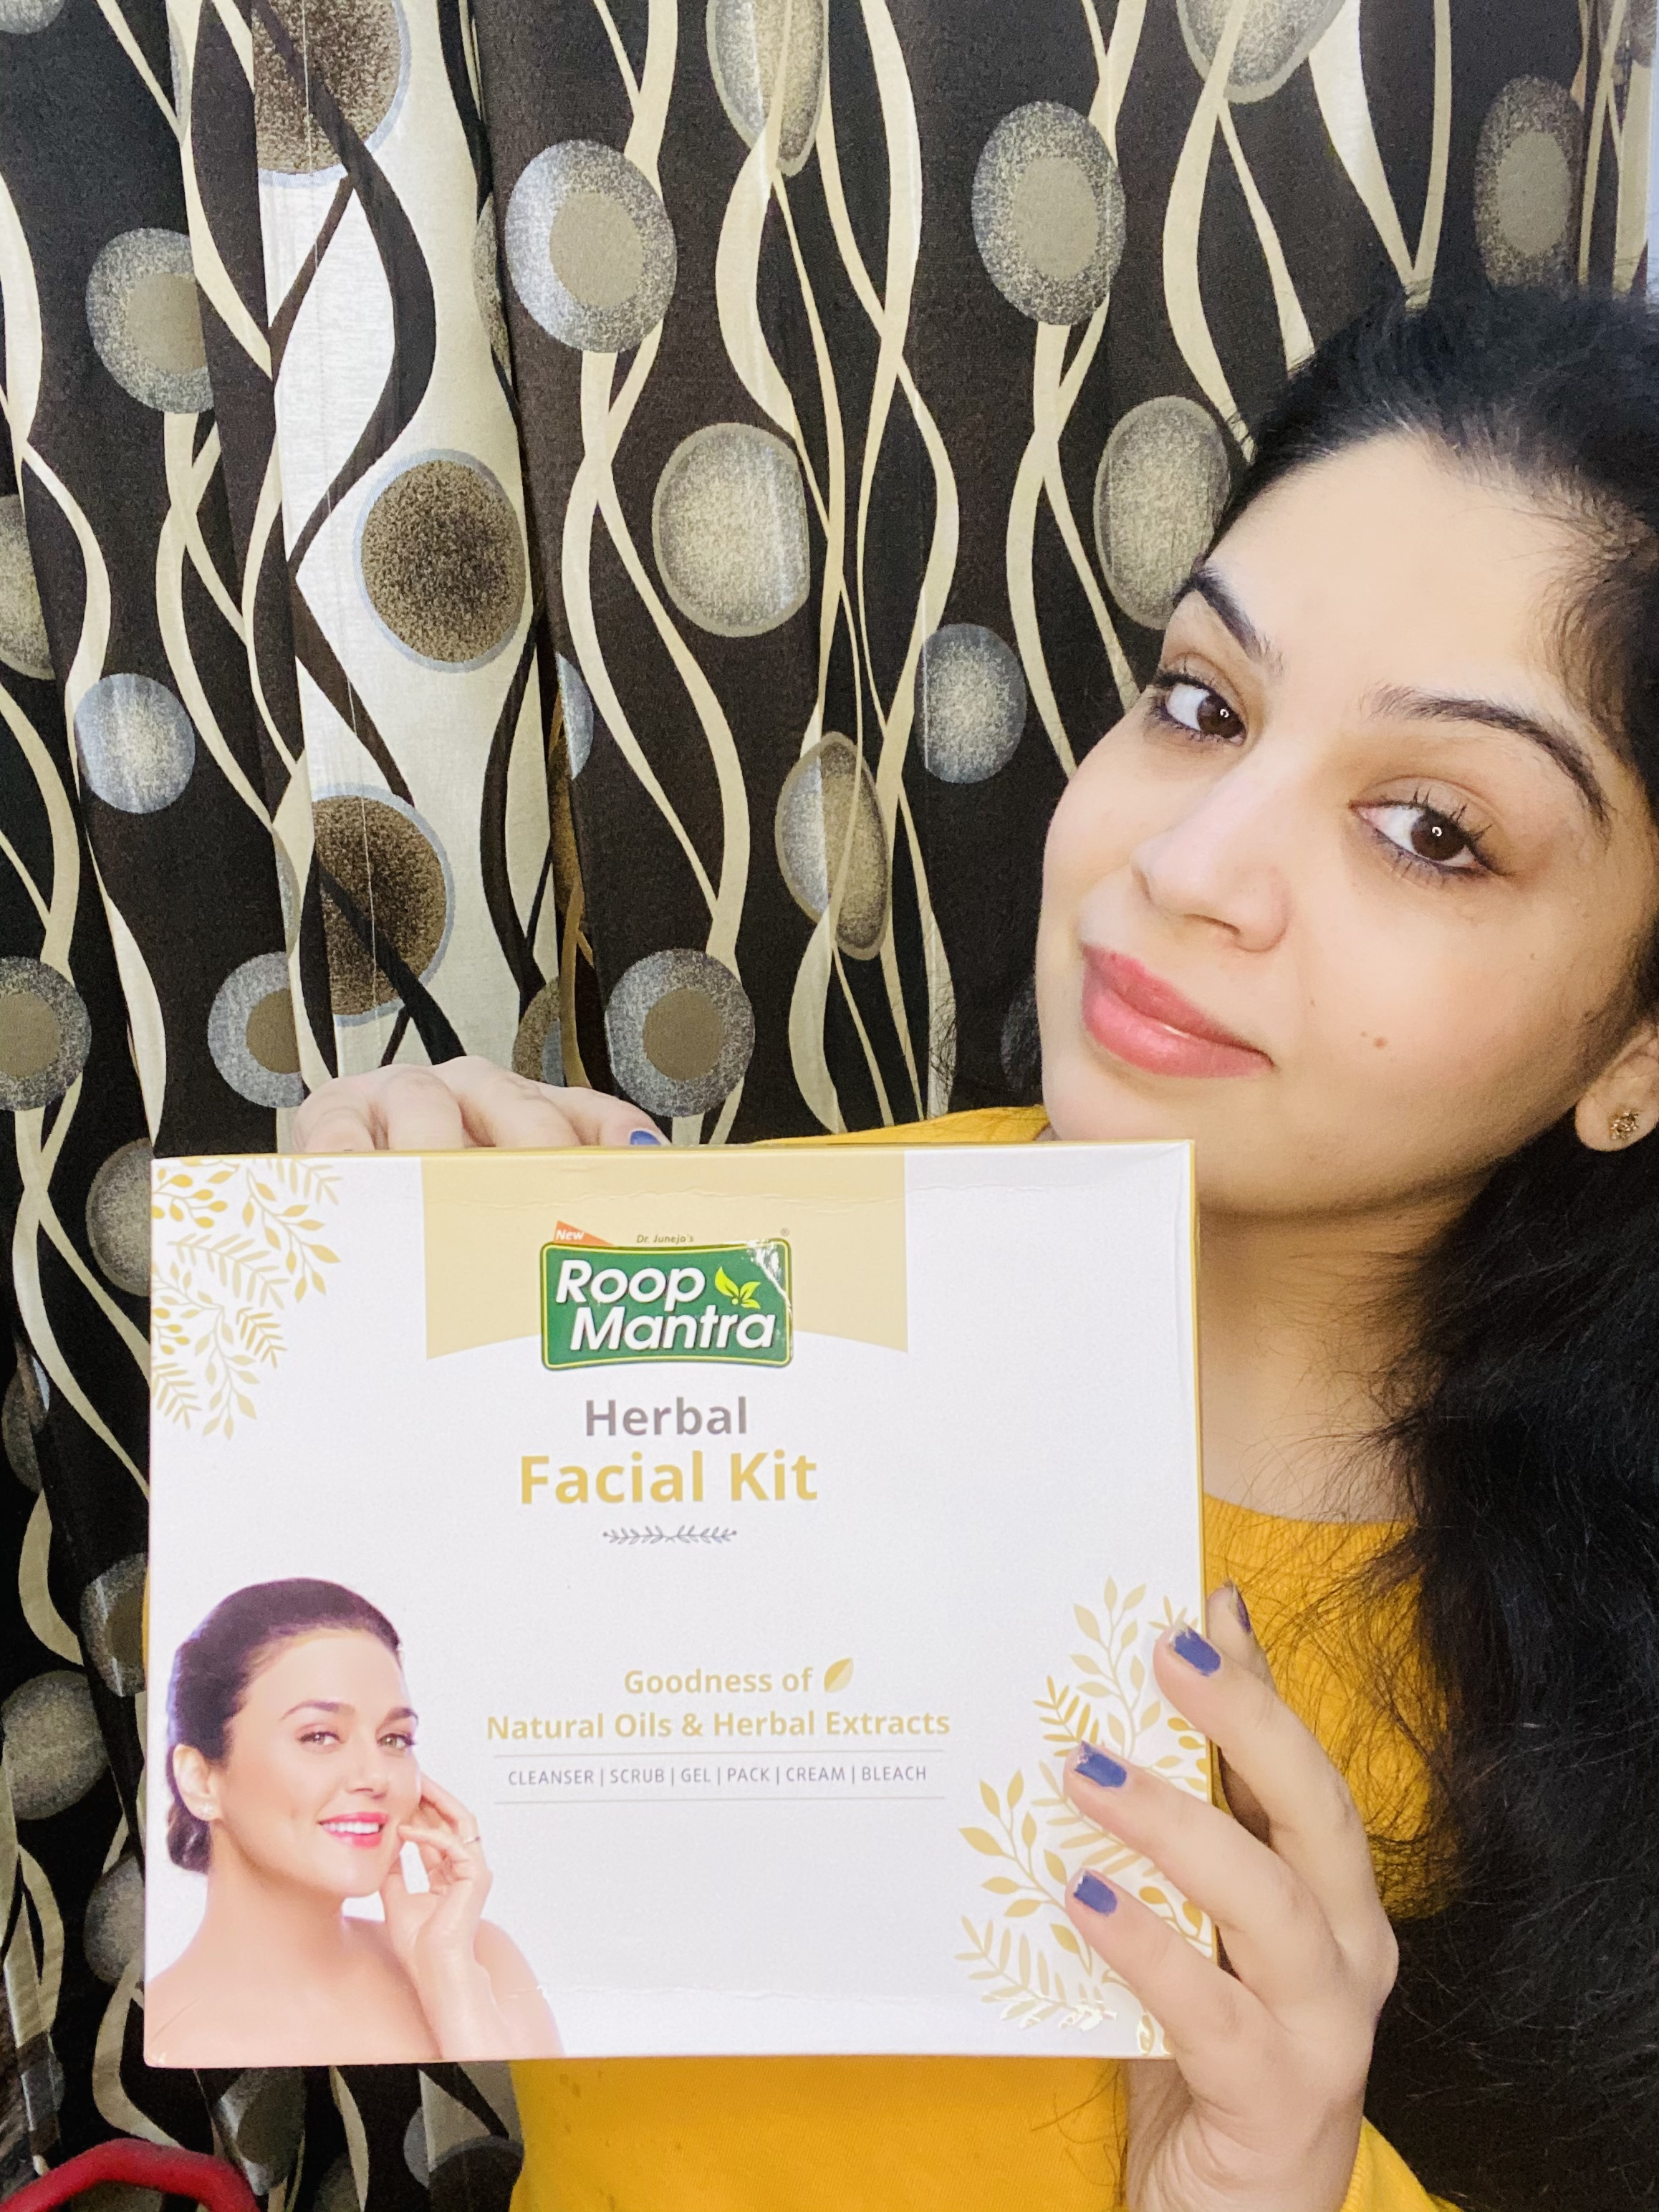 Roop Mantra Herbal Facial Kit pic 1-Get that salon glow at home-By shilpa_chanana